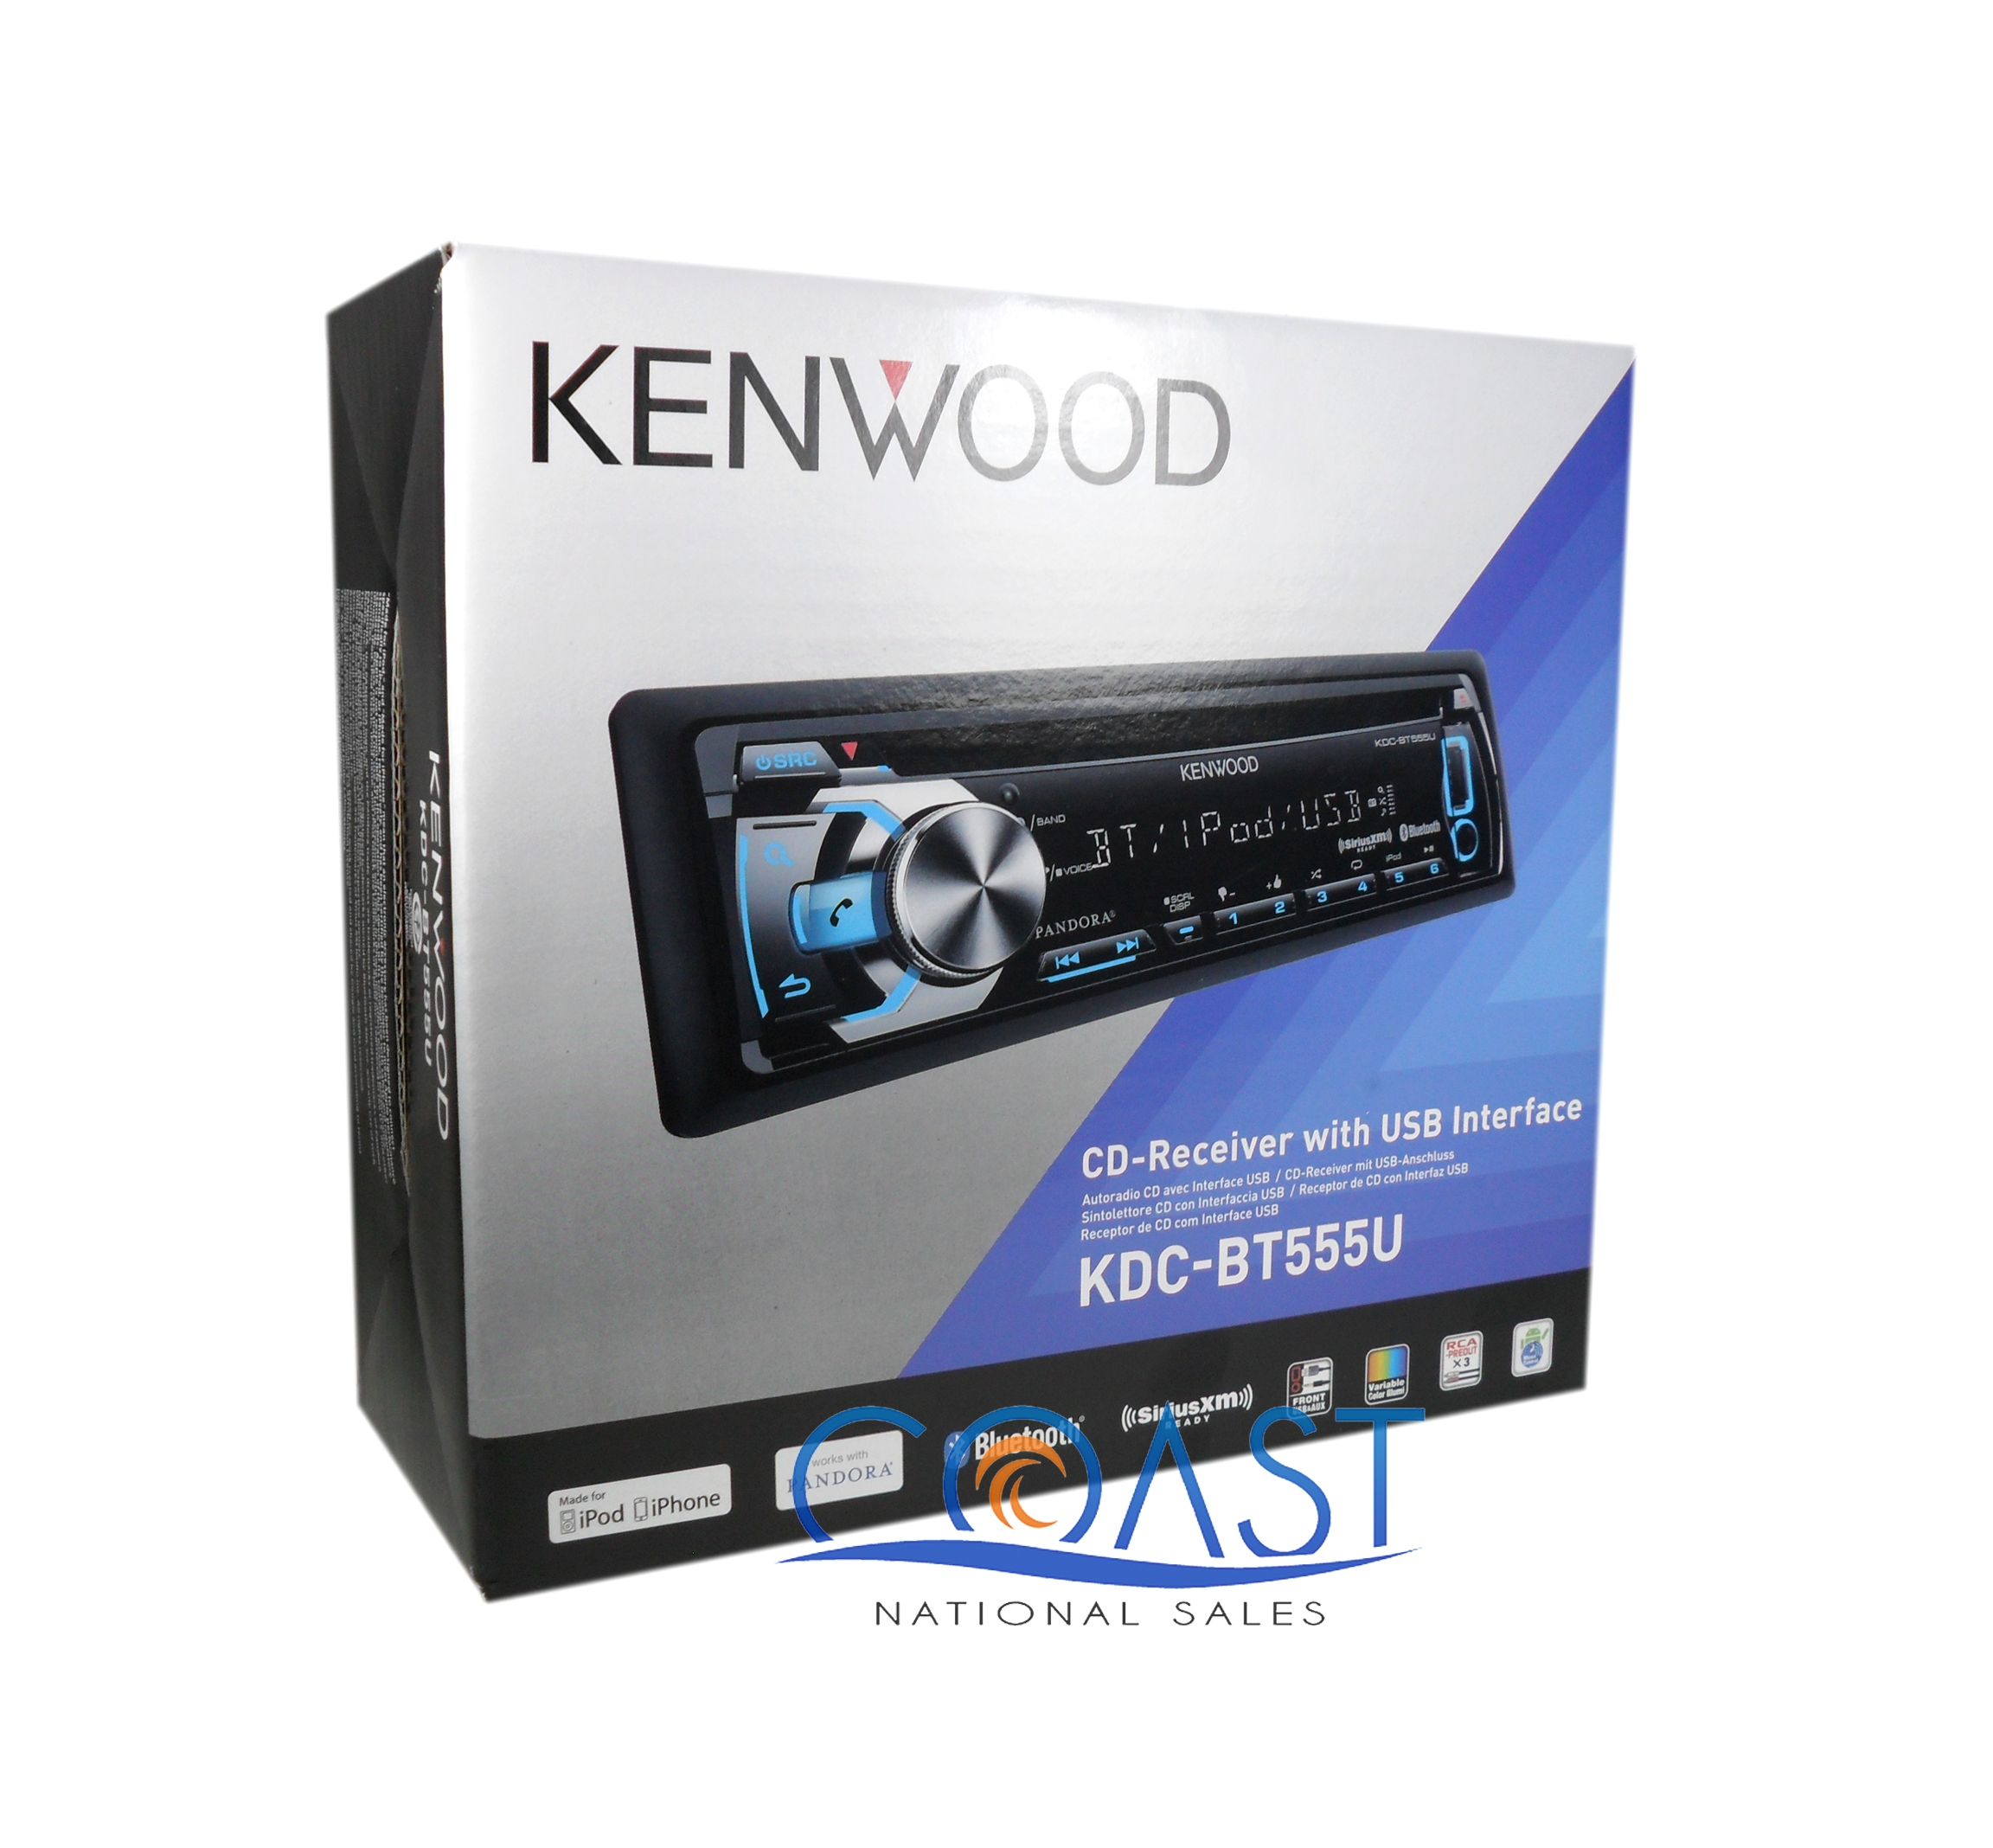 kenwood kdc-bt848u how to play music via bluetooth